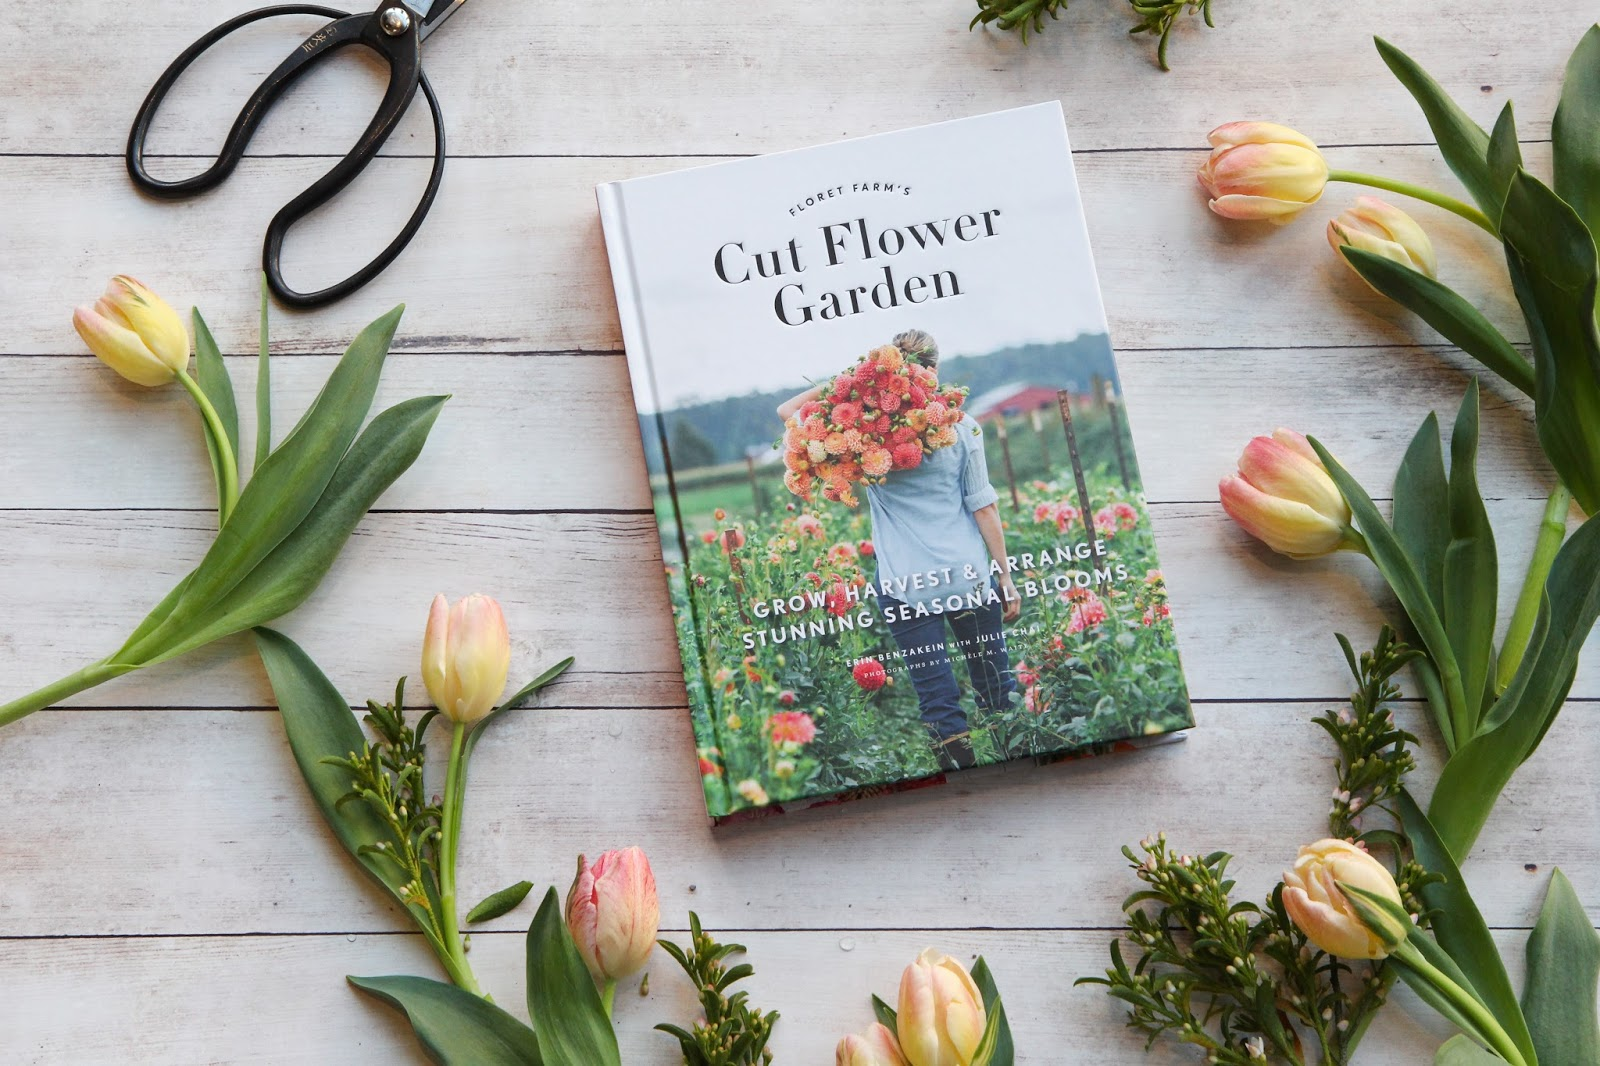 How To Make An Edible Infused Bouquet From Floret Farms Cut Flower